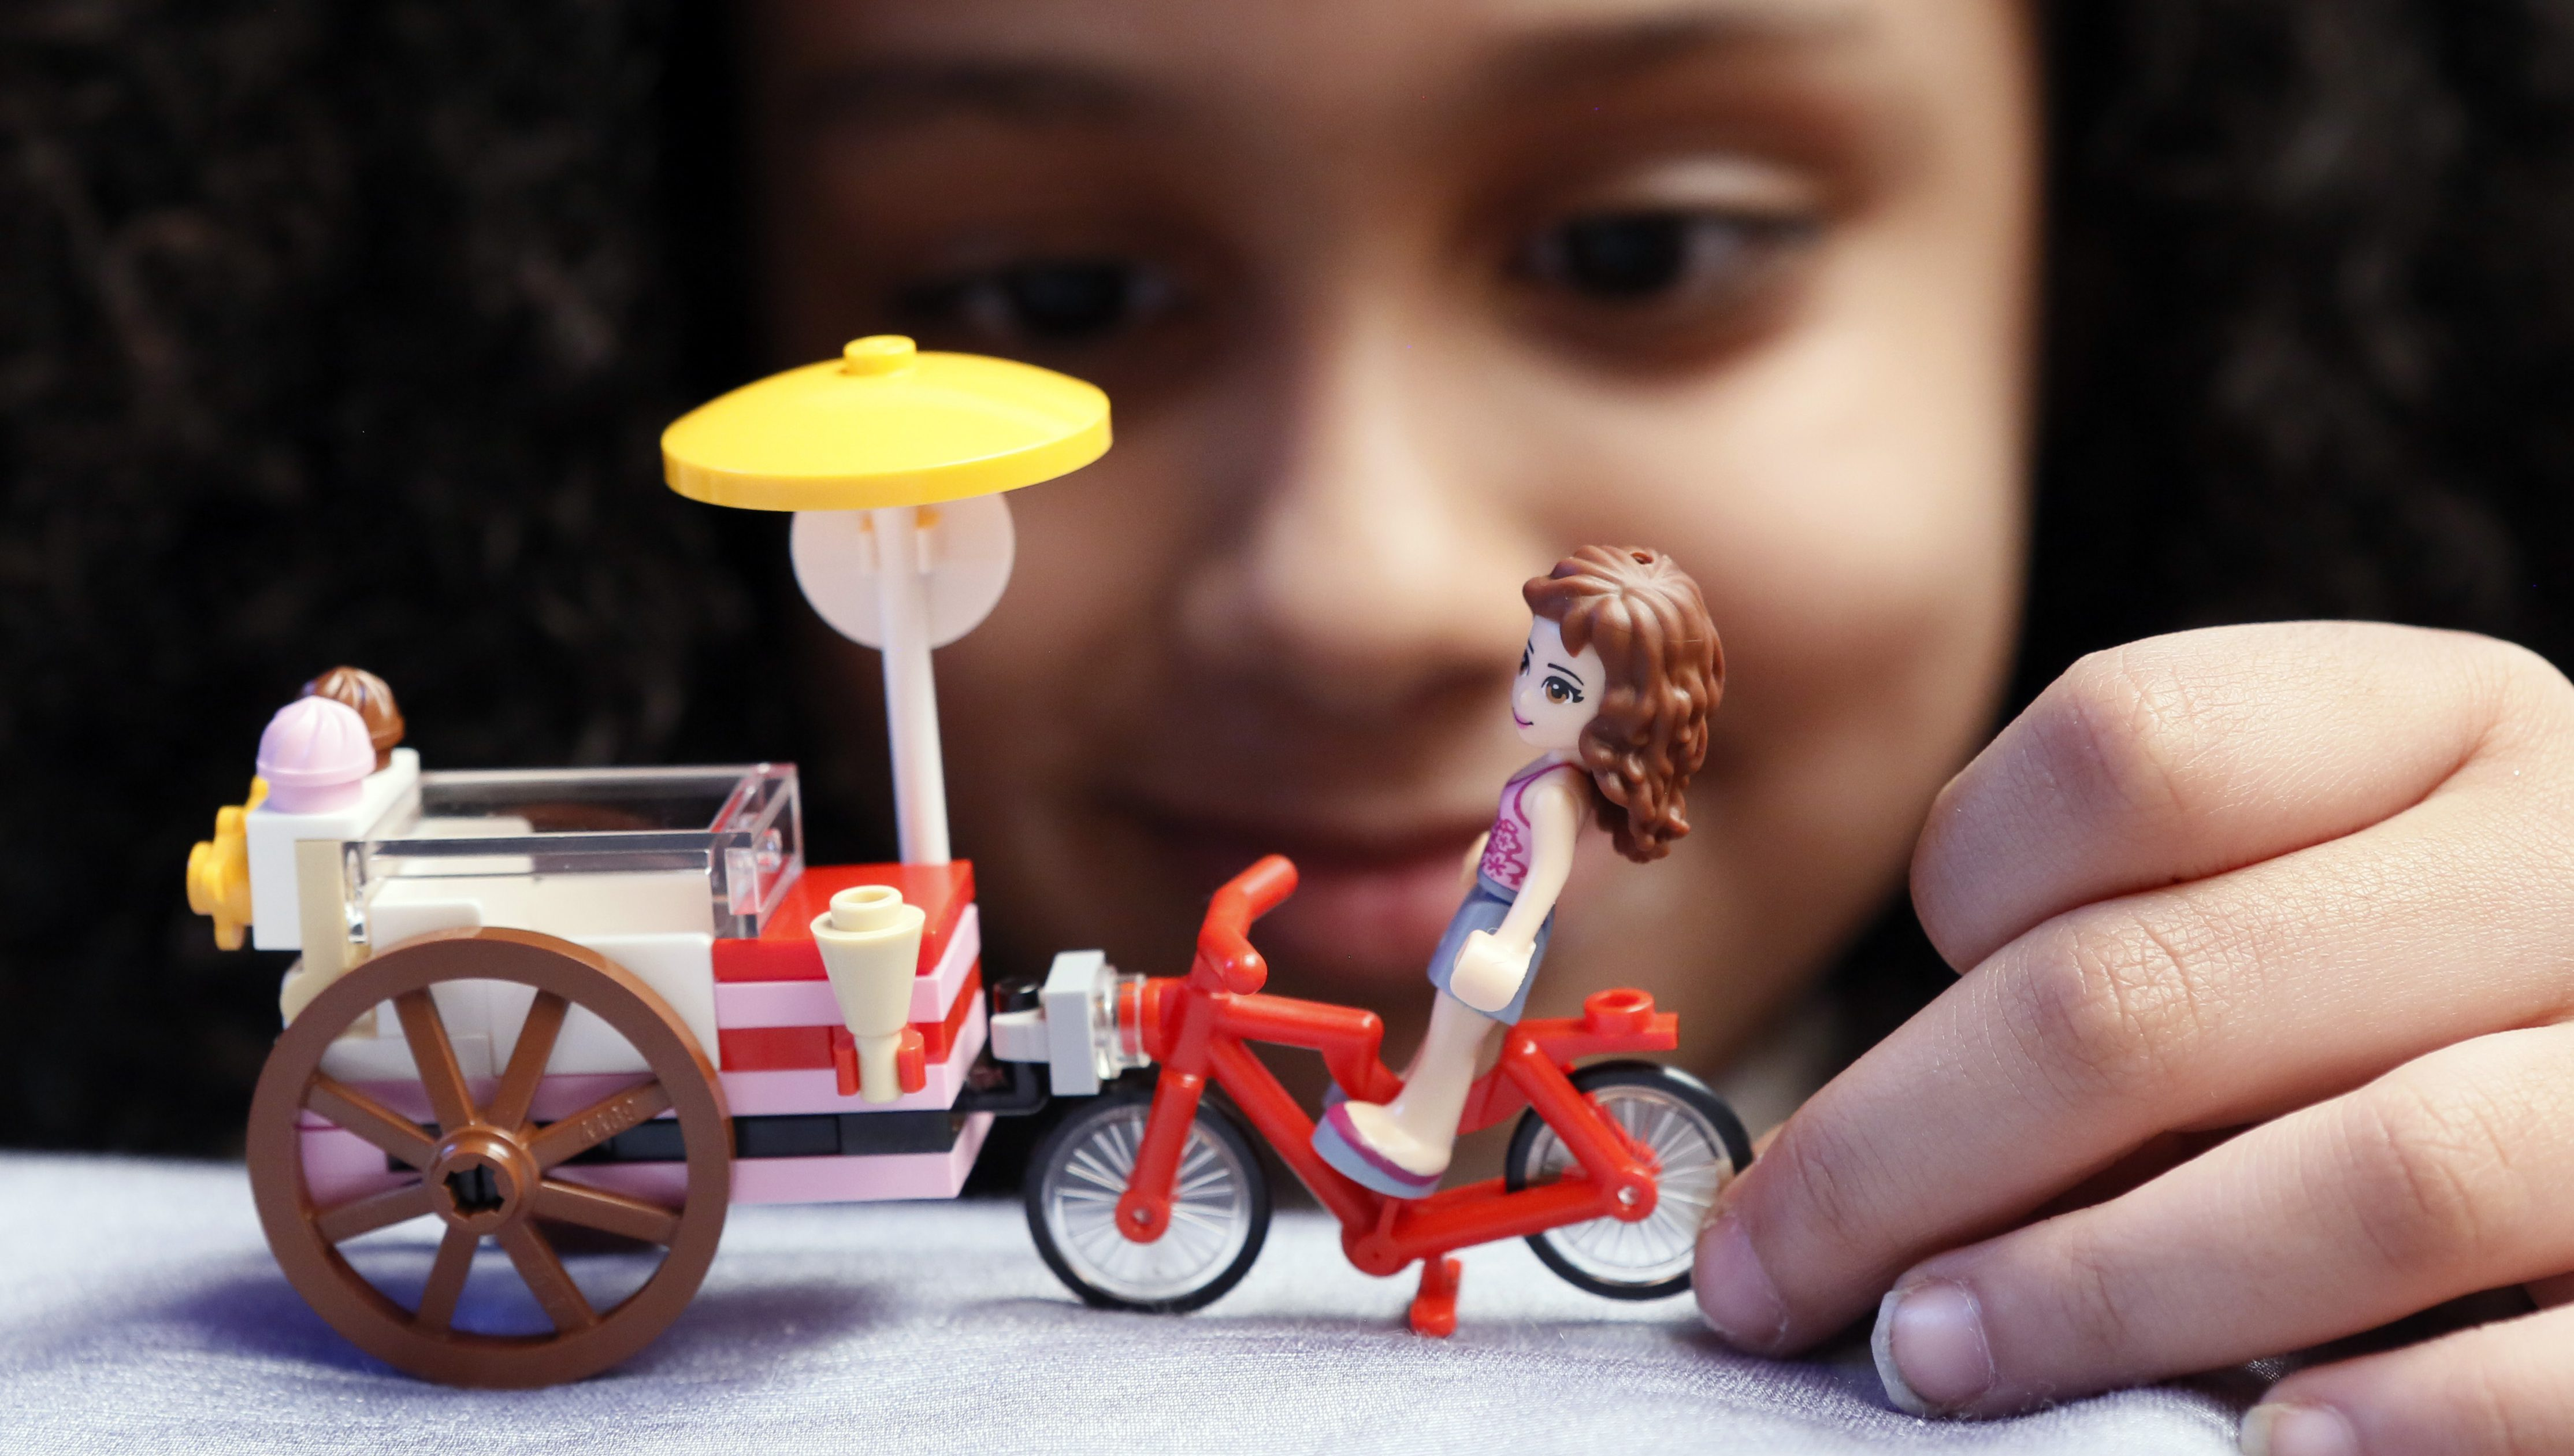 IMAGE DISTRIBUTED FOR MERLIN ENTERTAINMENT/LEGOLAND RESORTS - Gabriella Gudiel, 7, of Astoria, Queens, plays with a LEGO Friends set that she built at the LEGOLAND Florida Resort press event at the Grand Hyatt, on Tuesday, March 24, 2015 in New York. The second LEGOLAND Hotel in North America opens in Winter Haven, FL., on May 15, 2015.  (Photo by Stuart Ramson/Invision for Merlin Entertainments/LEGOLAND Resorts/AP Images)